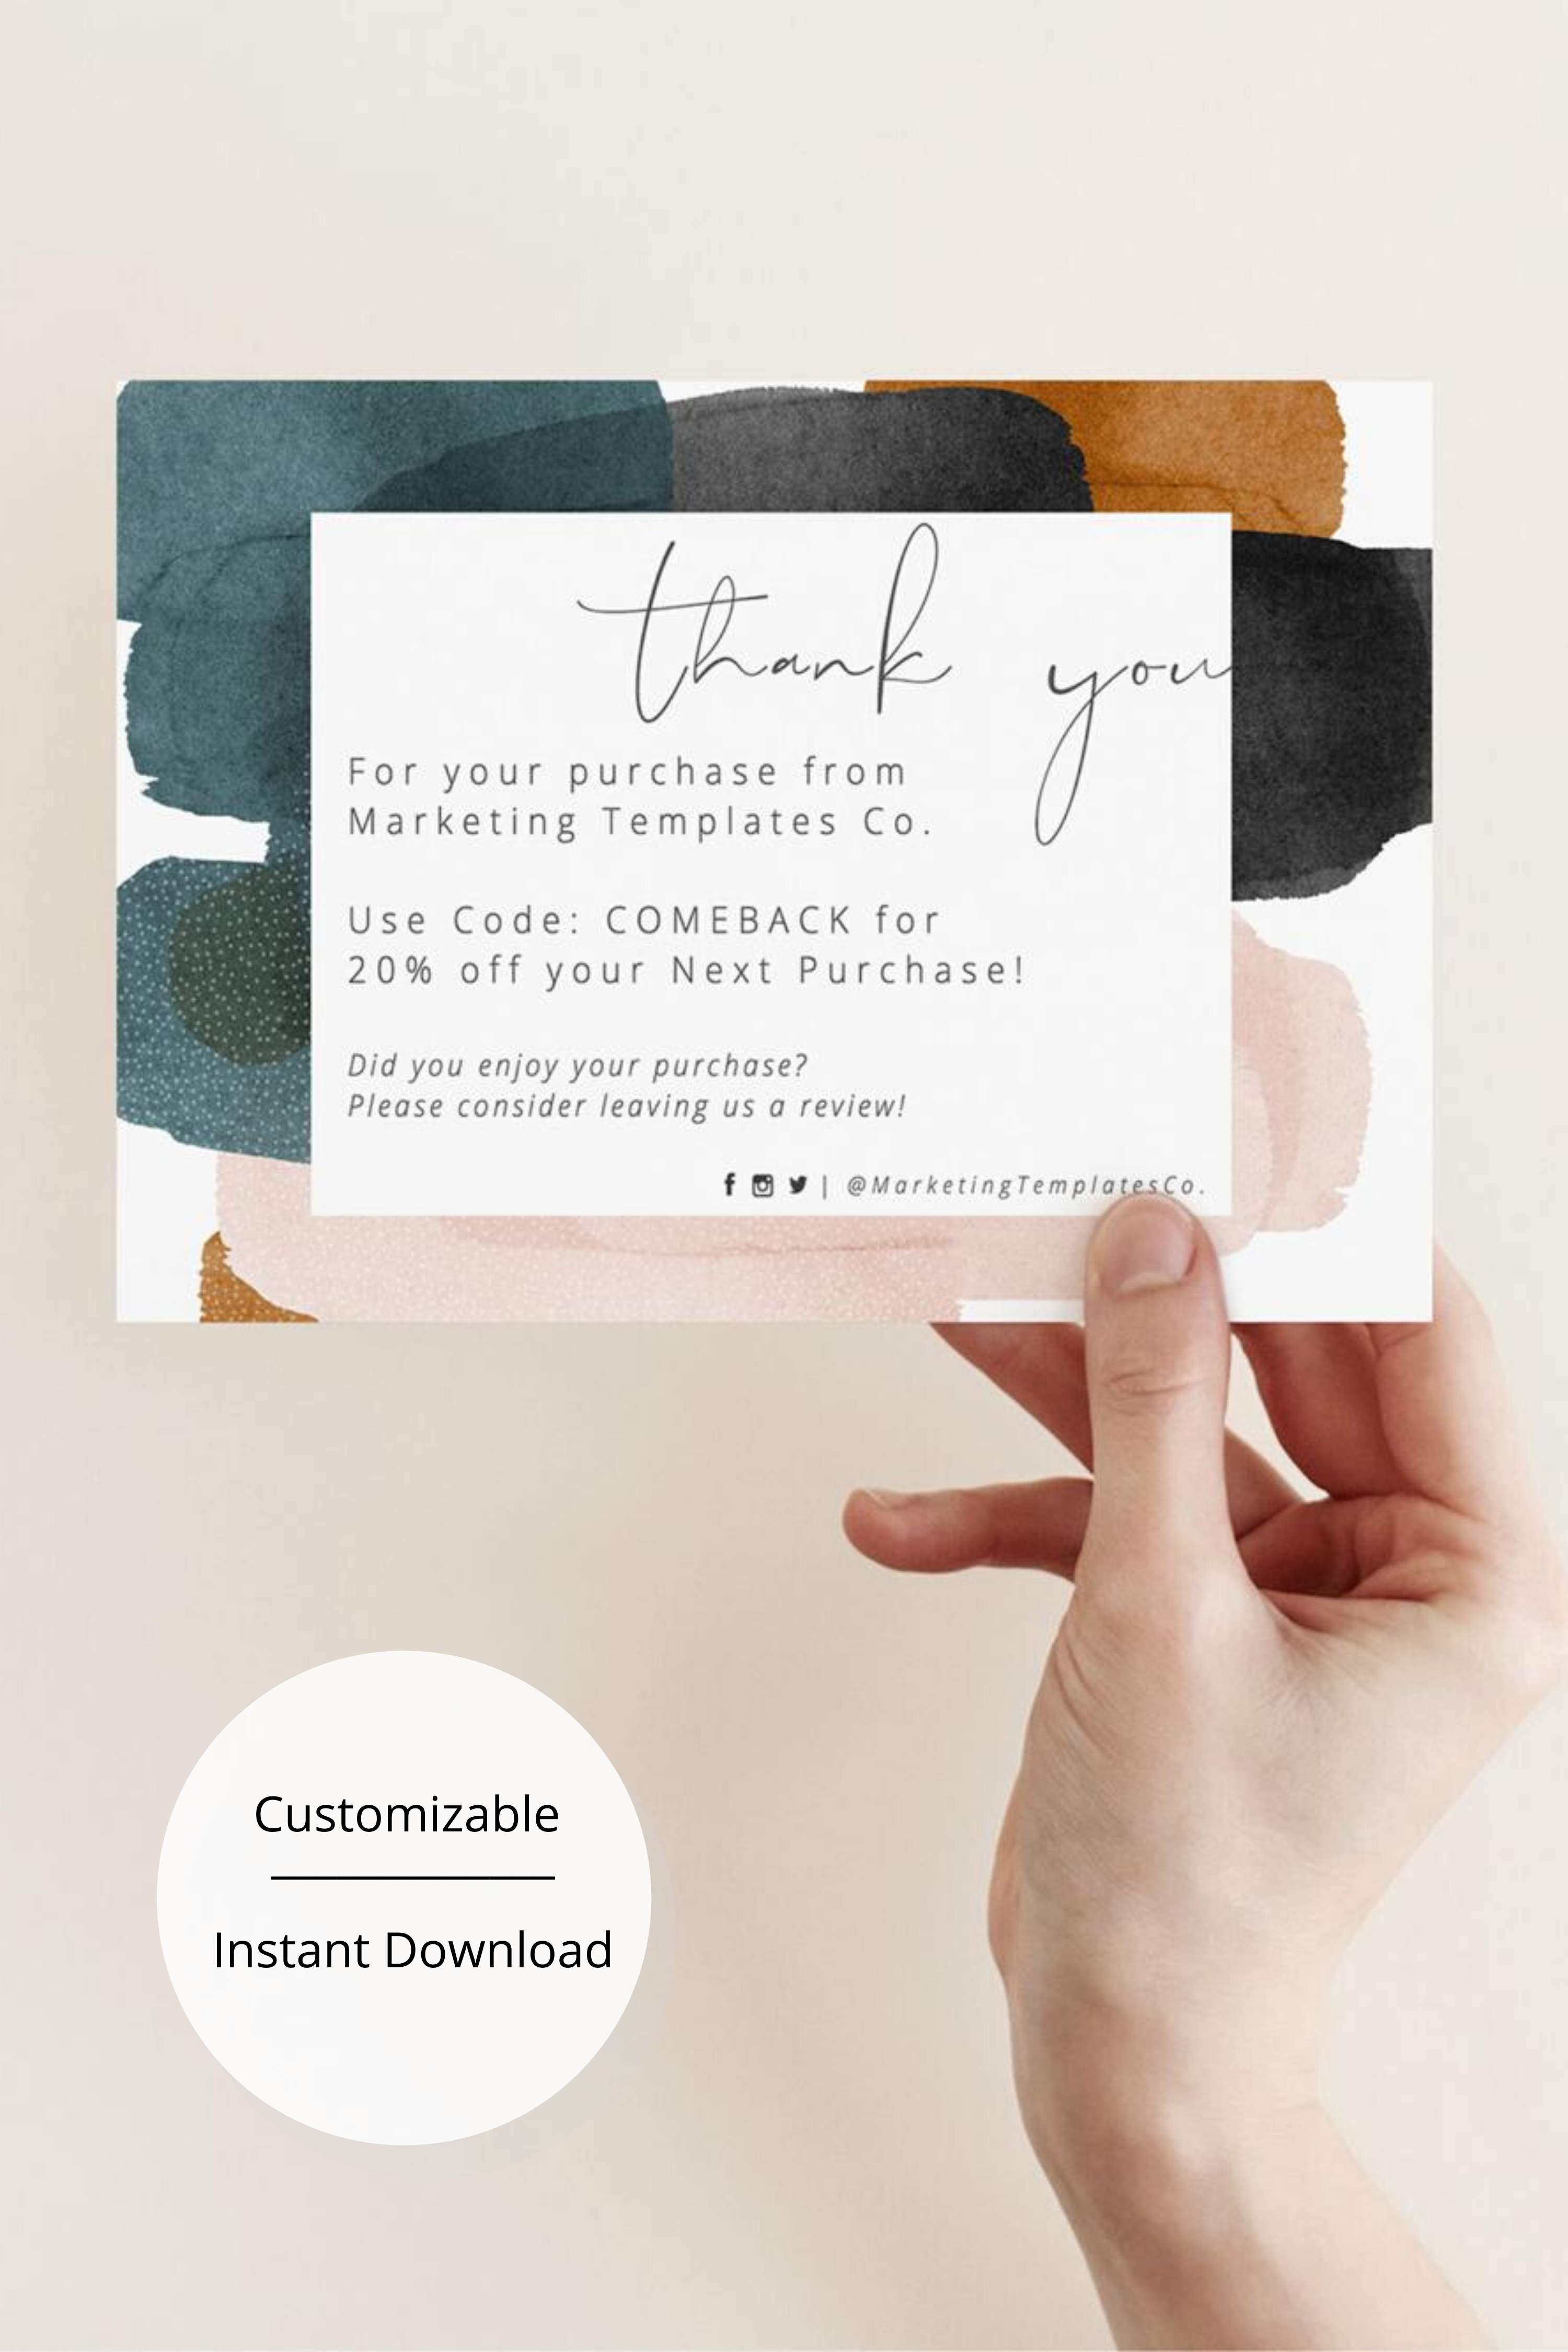 Thank You Card Inserts Business Thank You Cards Modern Business Thank You Inserts Small Business Cards Etsy Seller Insert Cards Business Thank You Cards Small Business Cards Thank You Cards